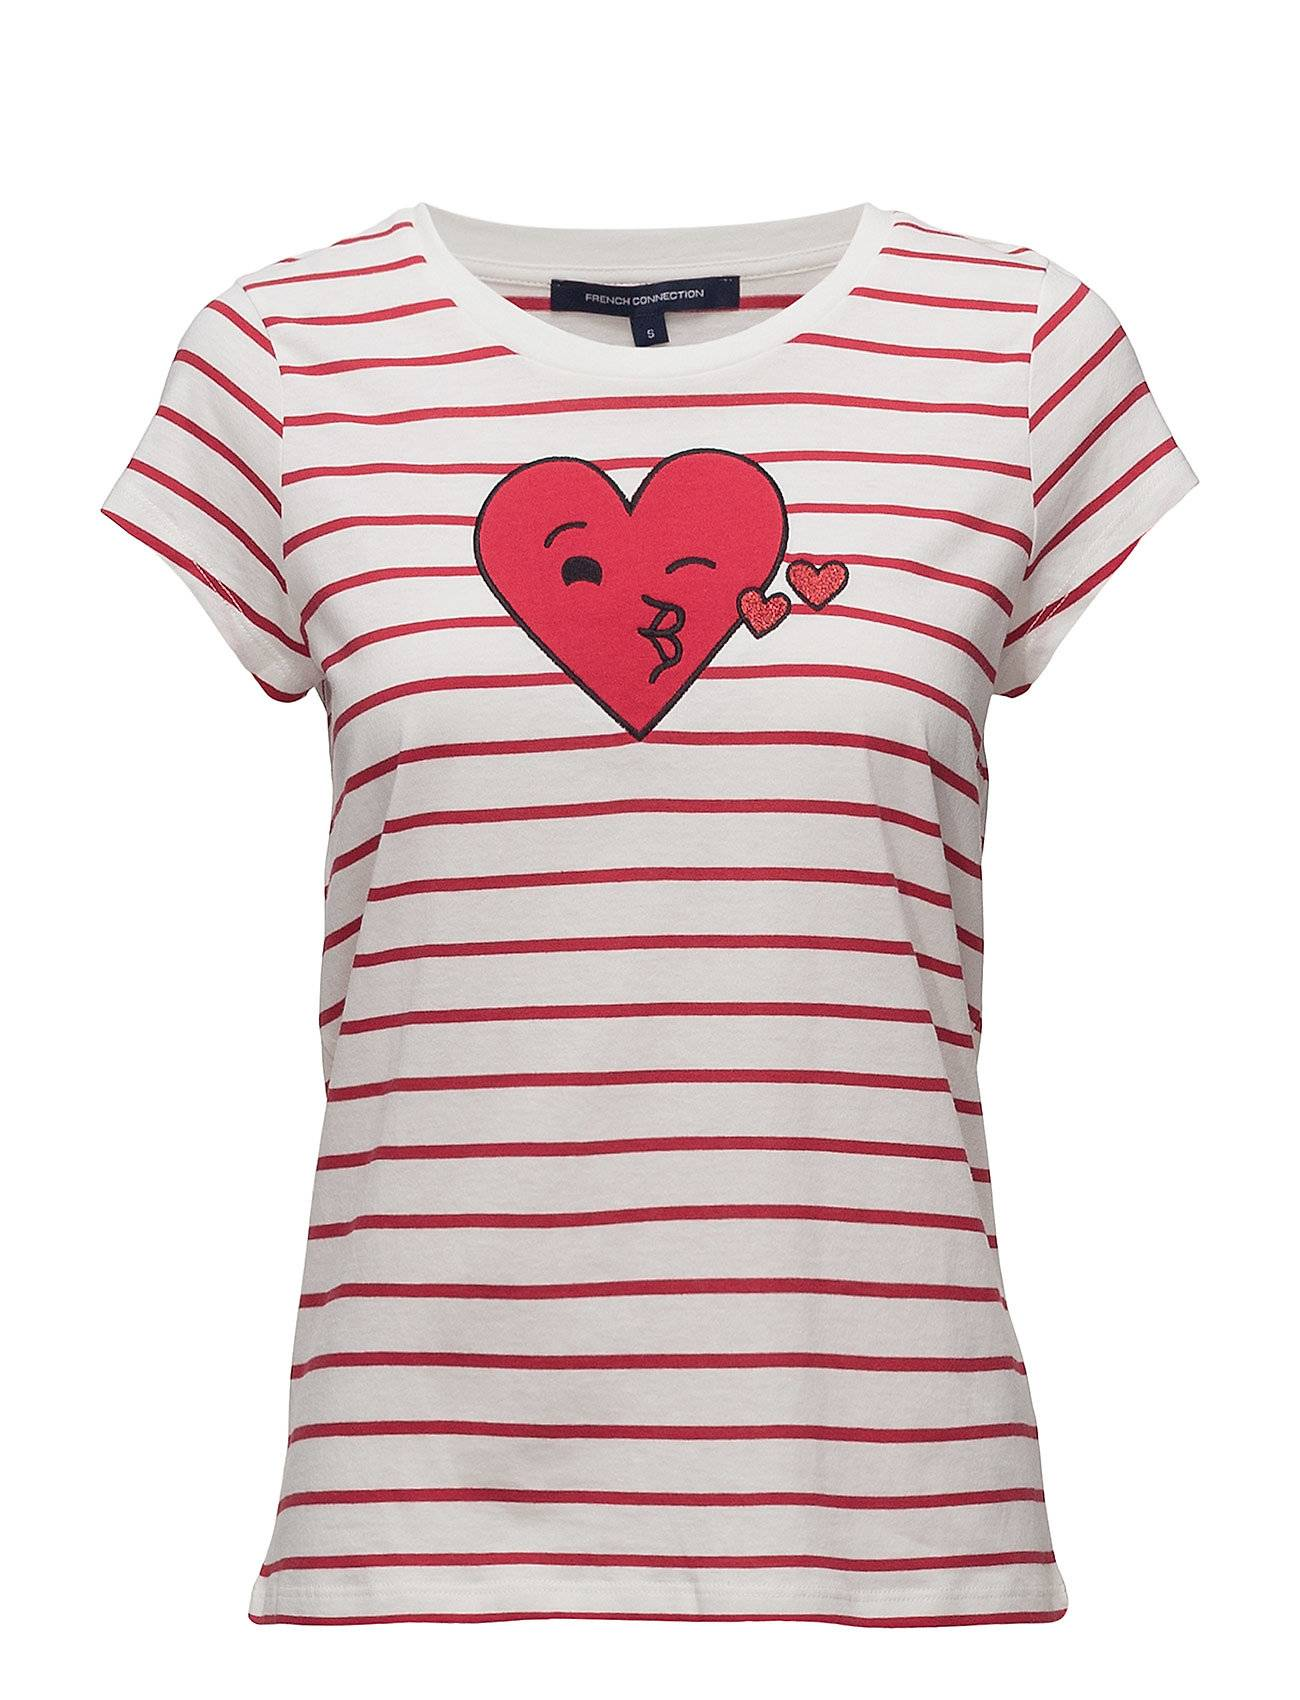 French Connection Heart Crew Neck Tshirt